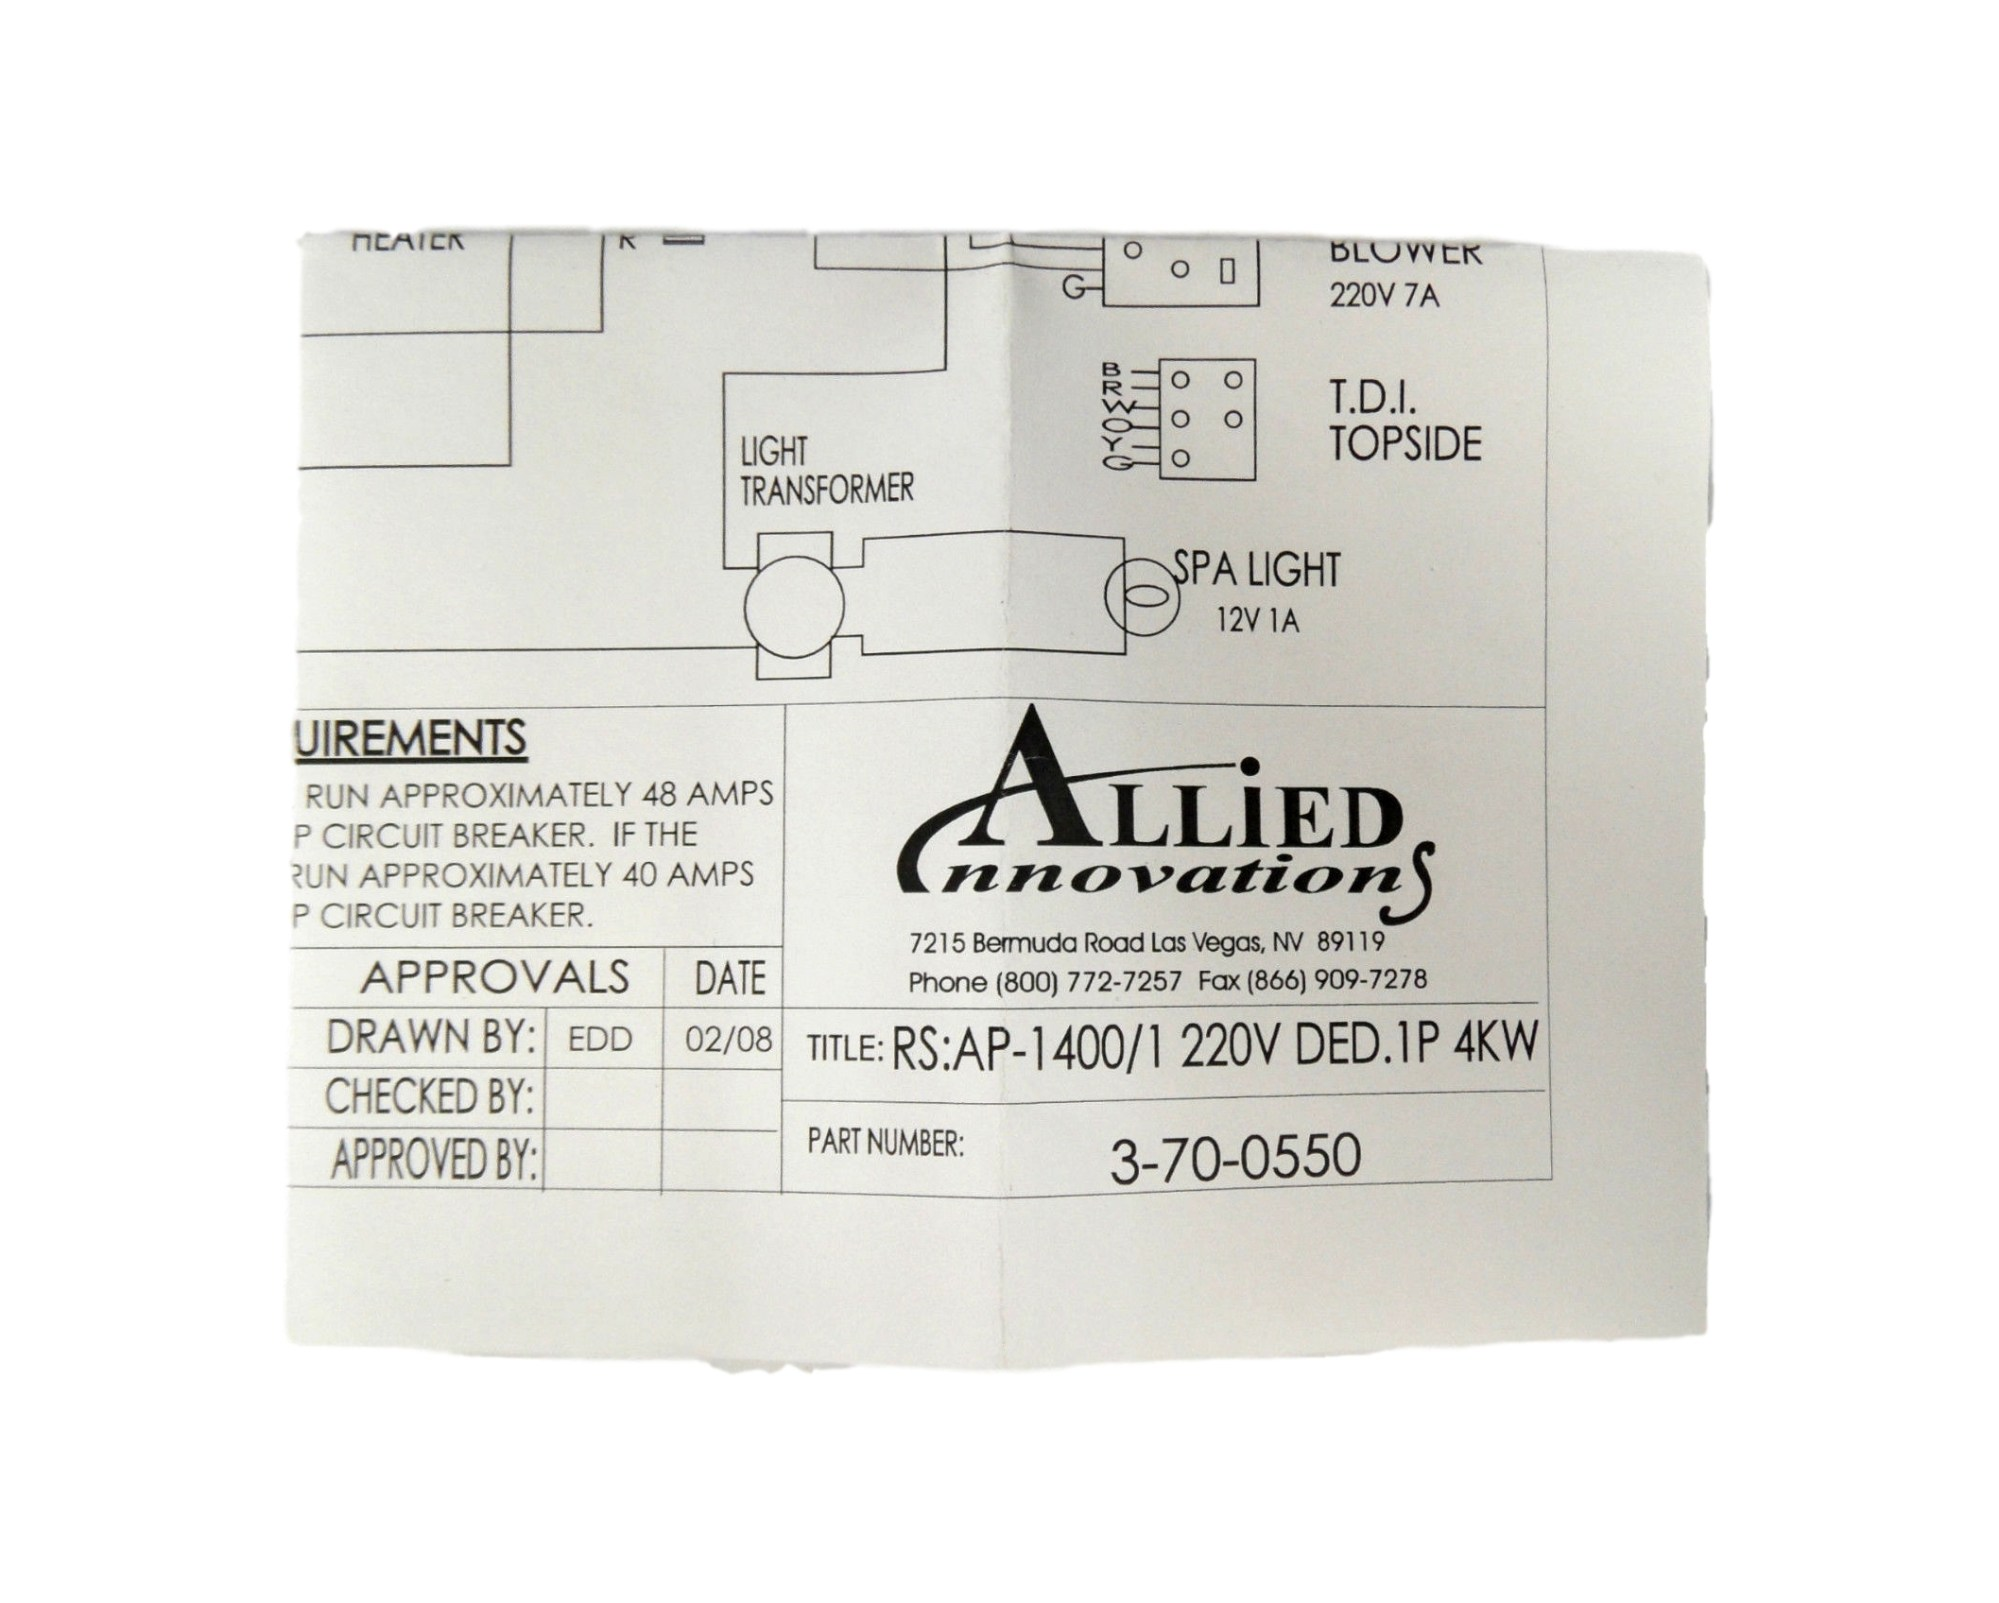 hight resolution of allied innovations 3 70 0550 wiring diagram ap 1400 rs 1400 1 220v ded 1p 4kw walmart com